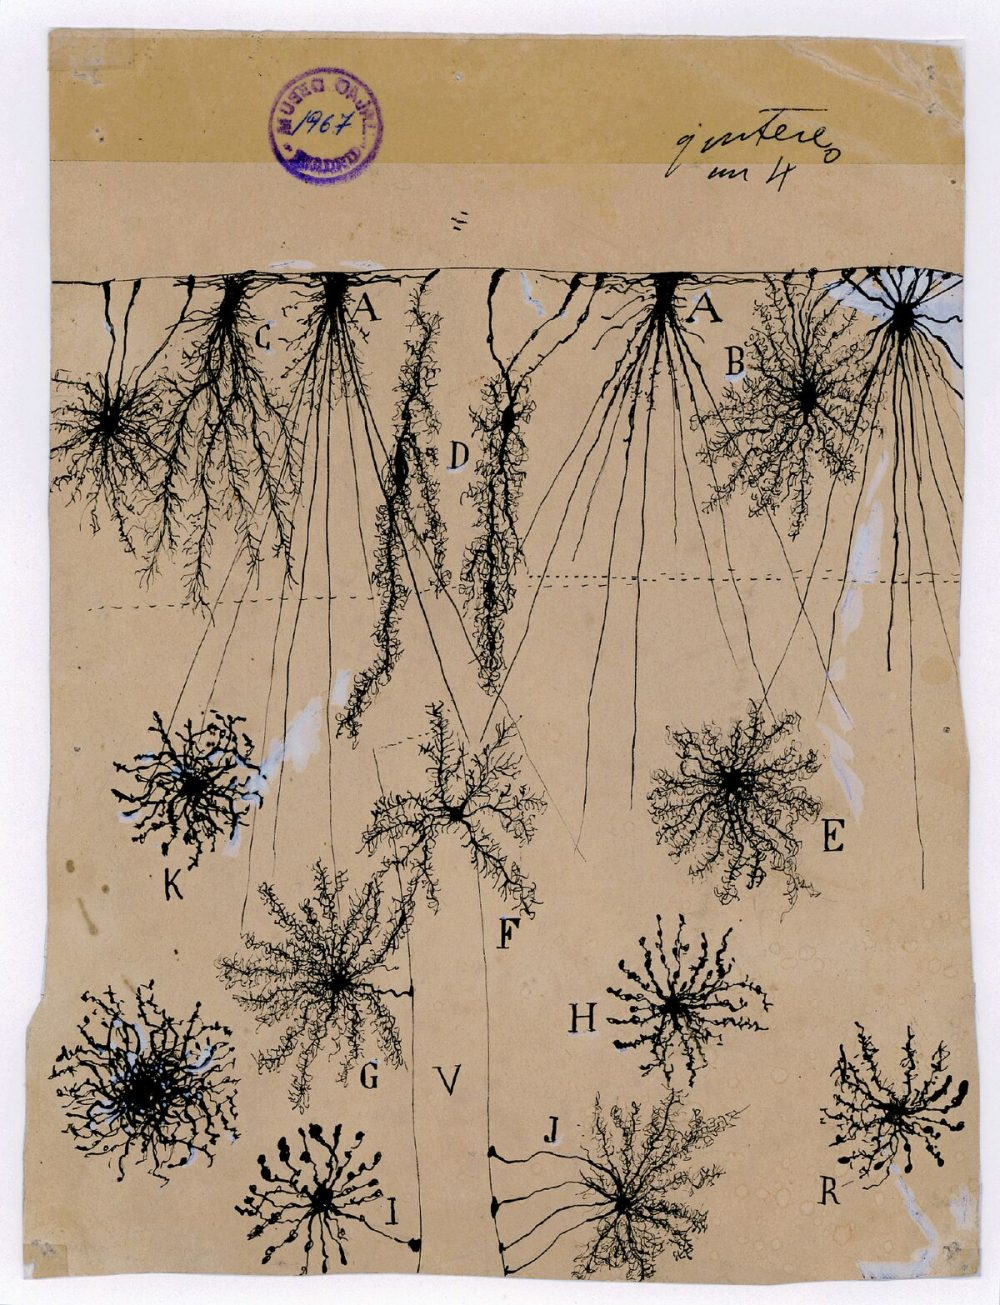 Santiago Ramón y Cajal's ink and pencil drawing of glial cells of the cerebral cortex of a child, created in 1904. (Courtesy of Instituto Cajal)